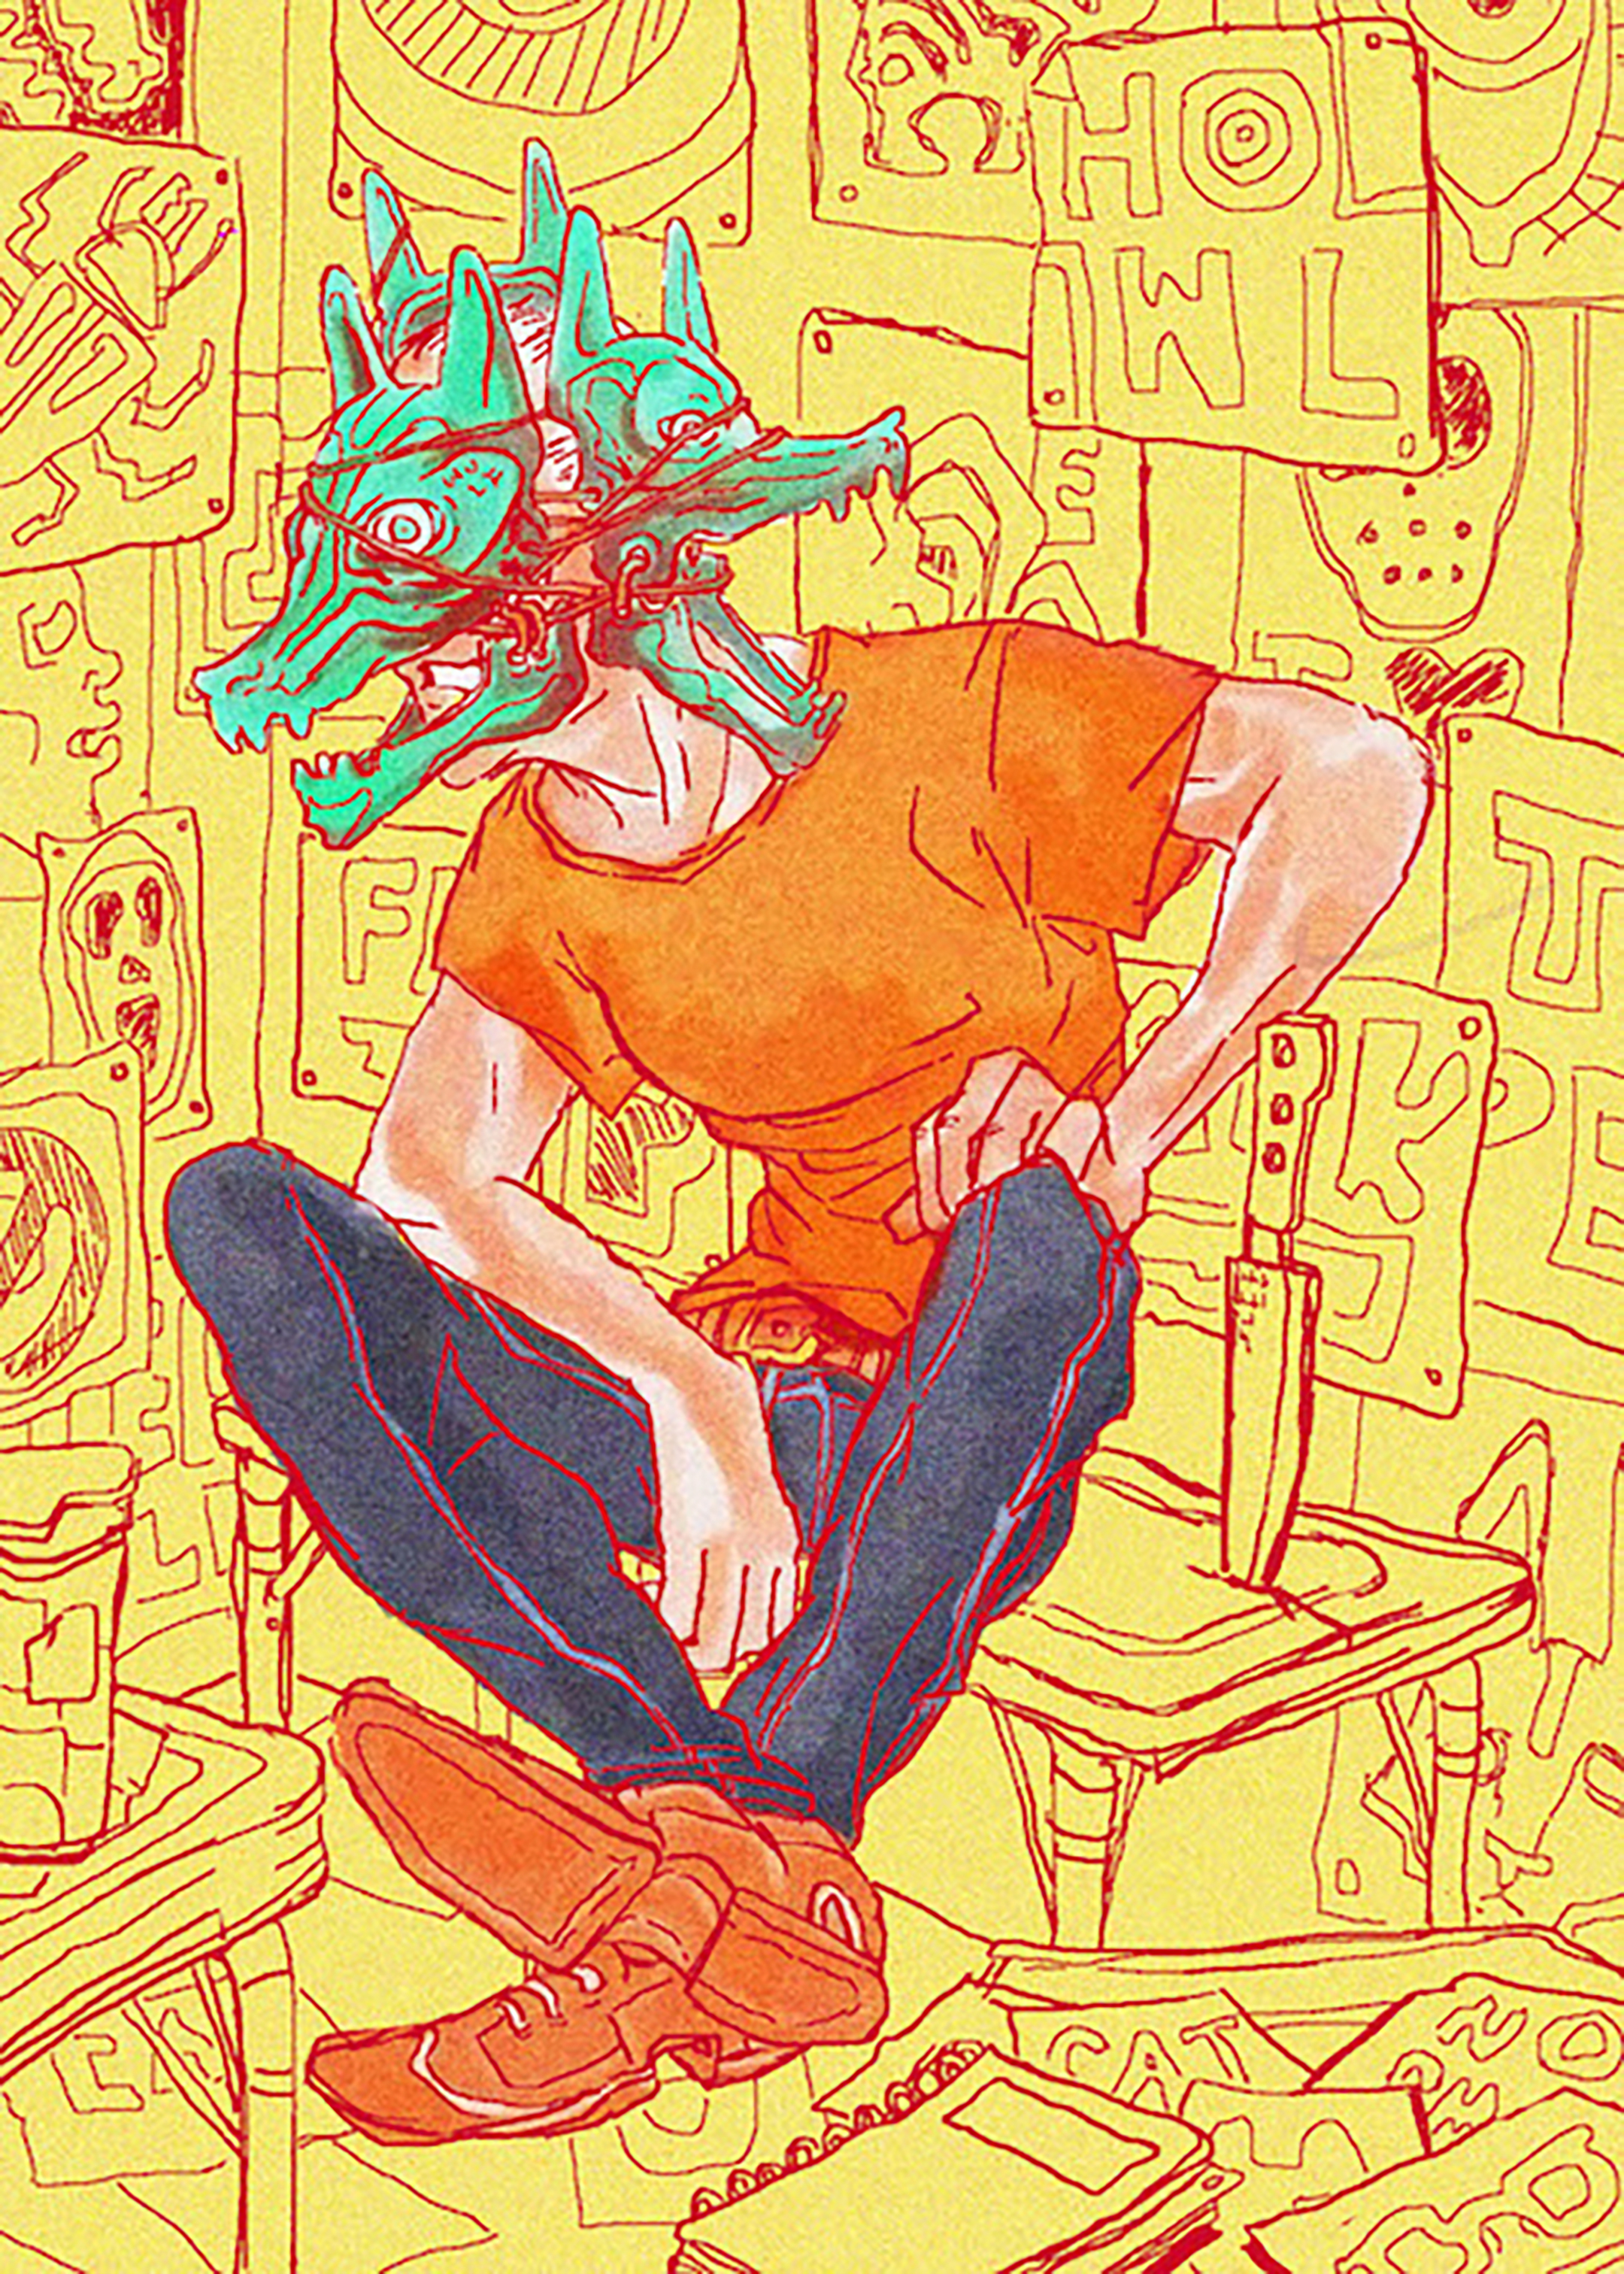 art in a comic book style featuring a young man seated on a stool wearing a green wolf mask and orange t-shirt and blue jeans against a yellow background